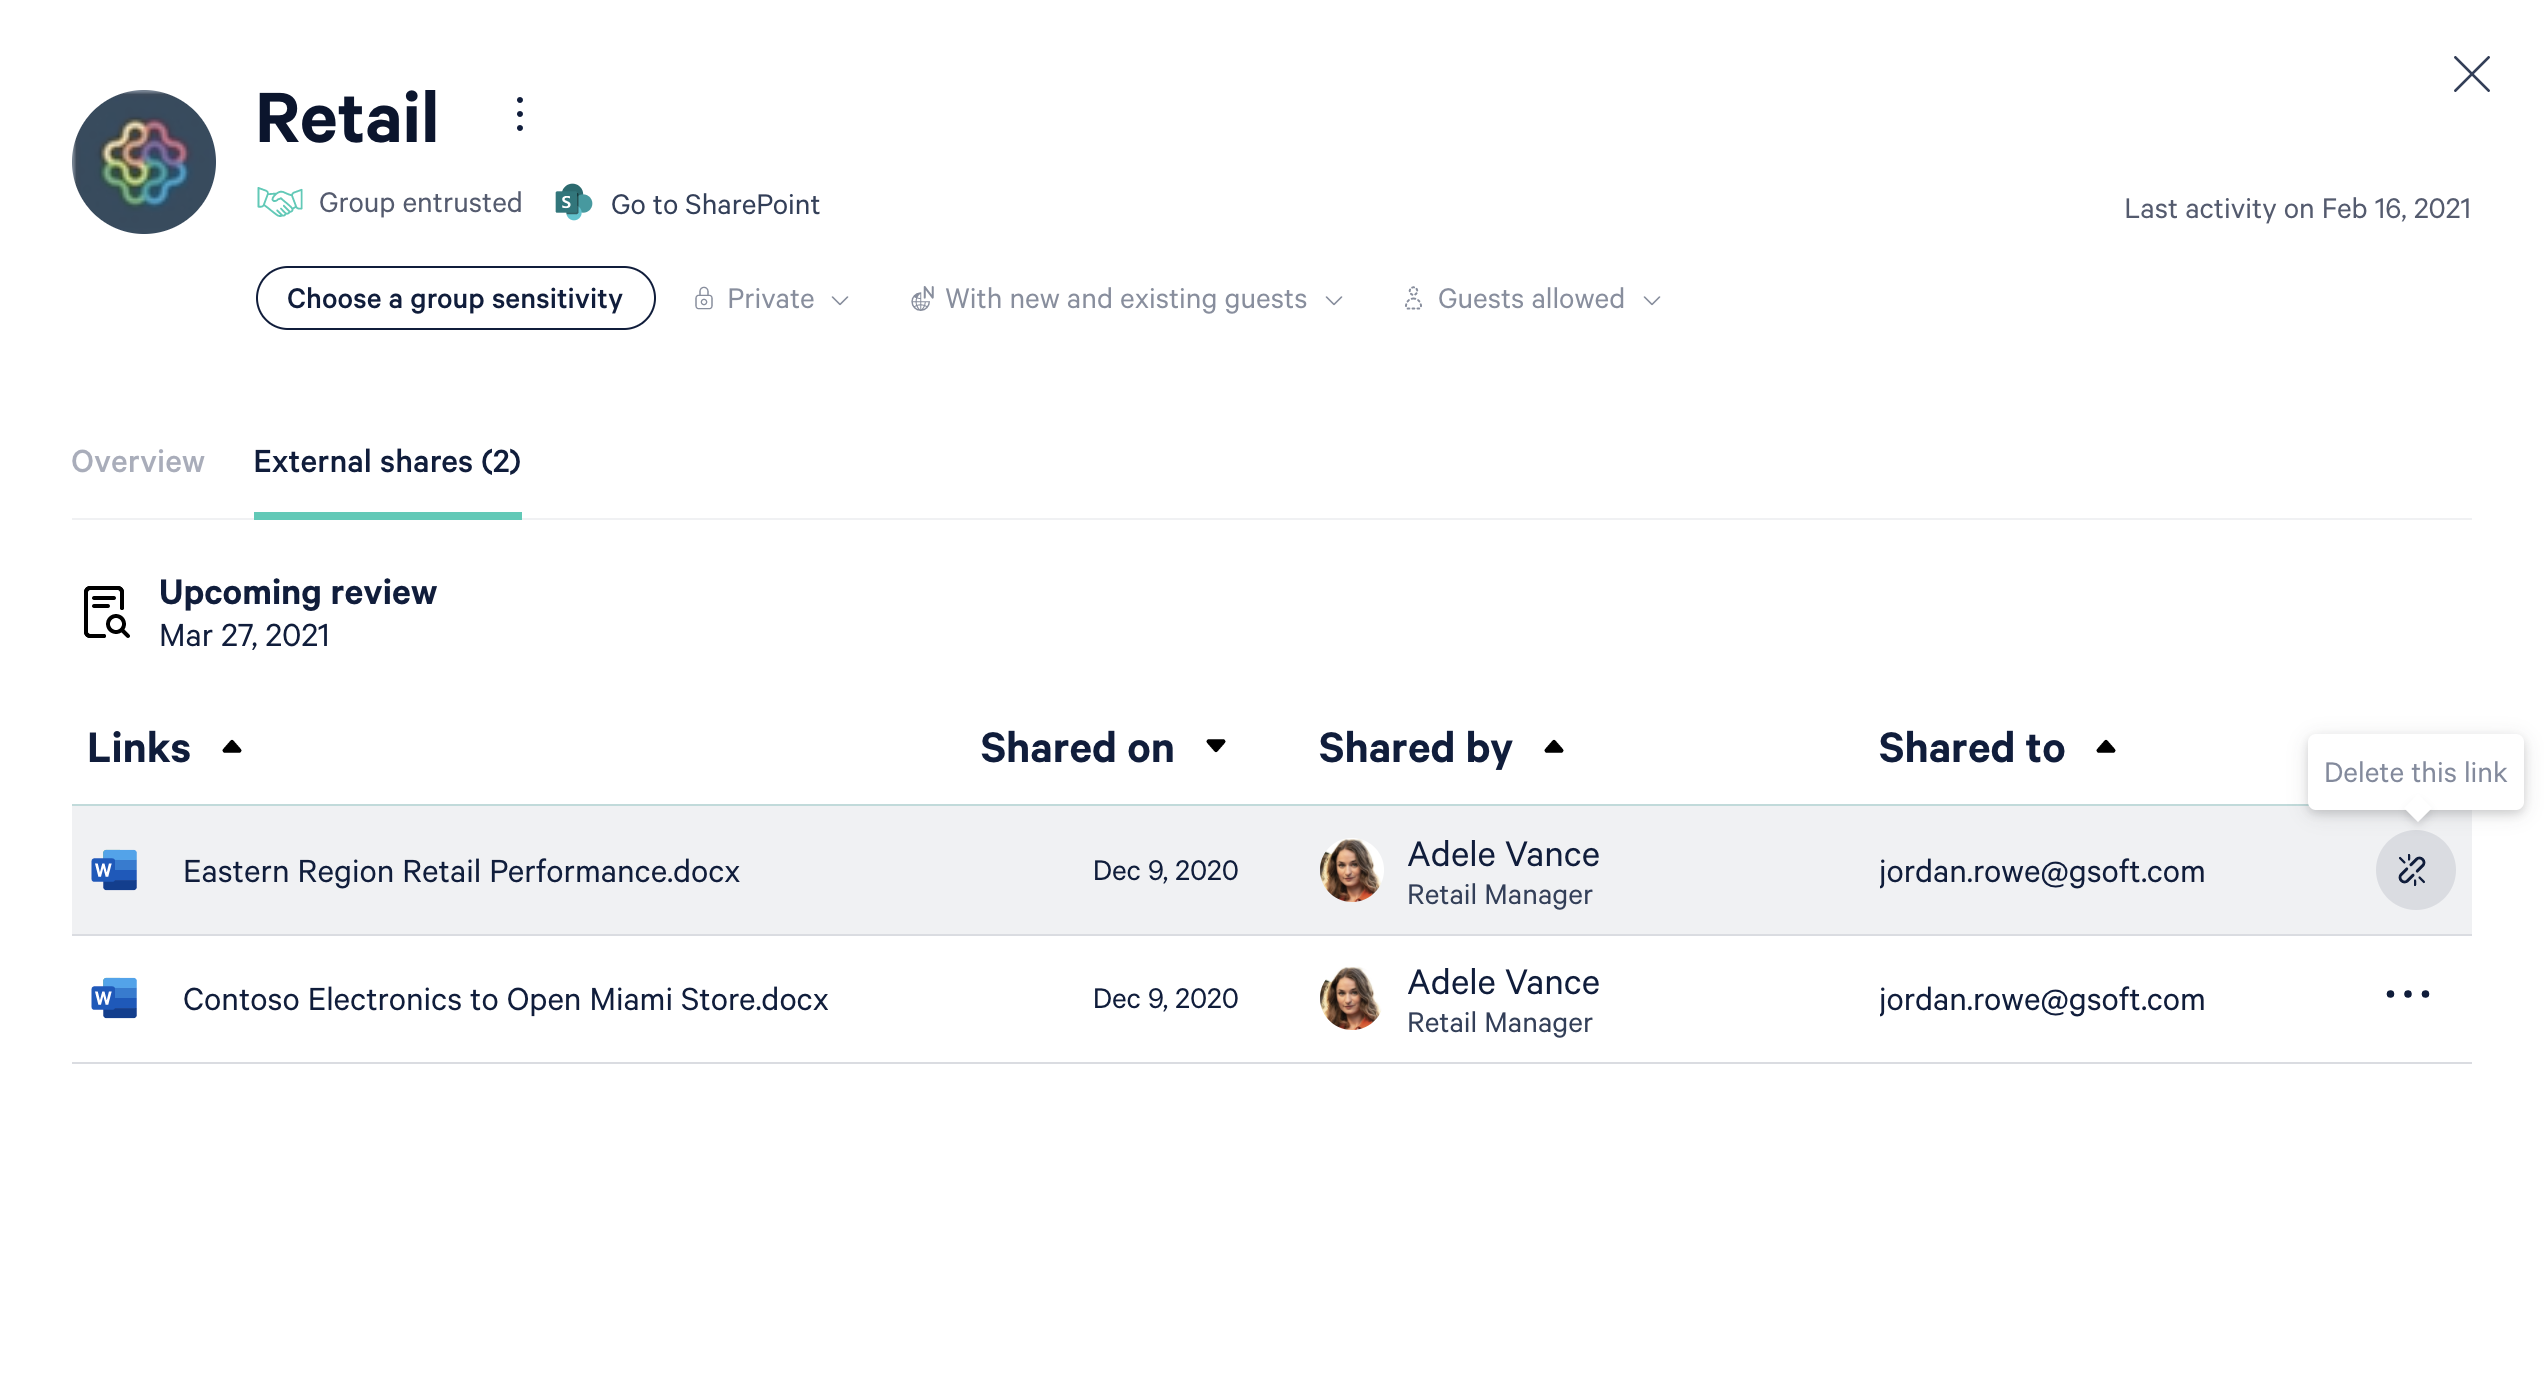 Screenhsot of external sharing link details for the Retail team.